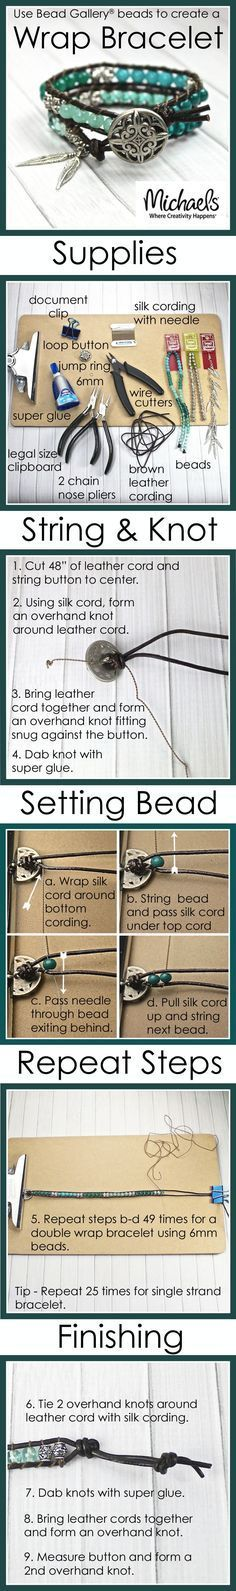 Use Bead Gallery beads to create a trendy wrap bracelet following these easy steps